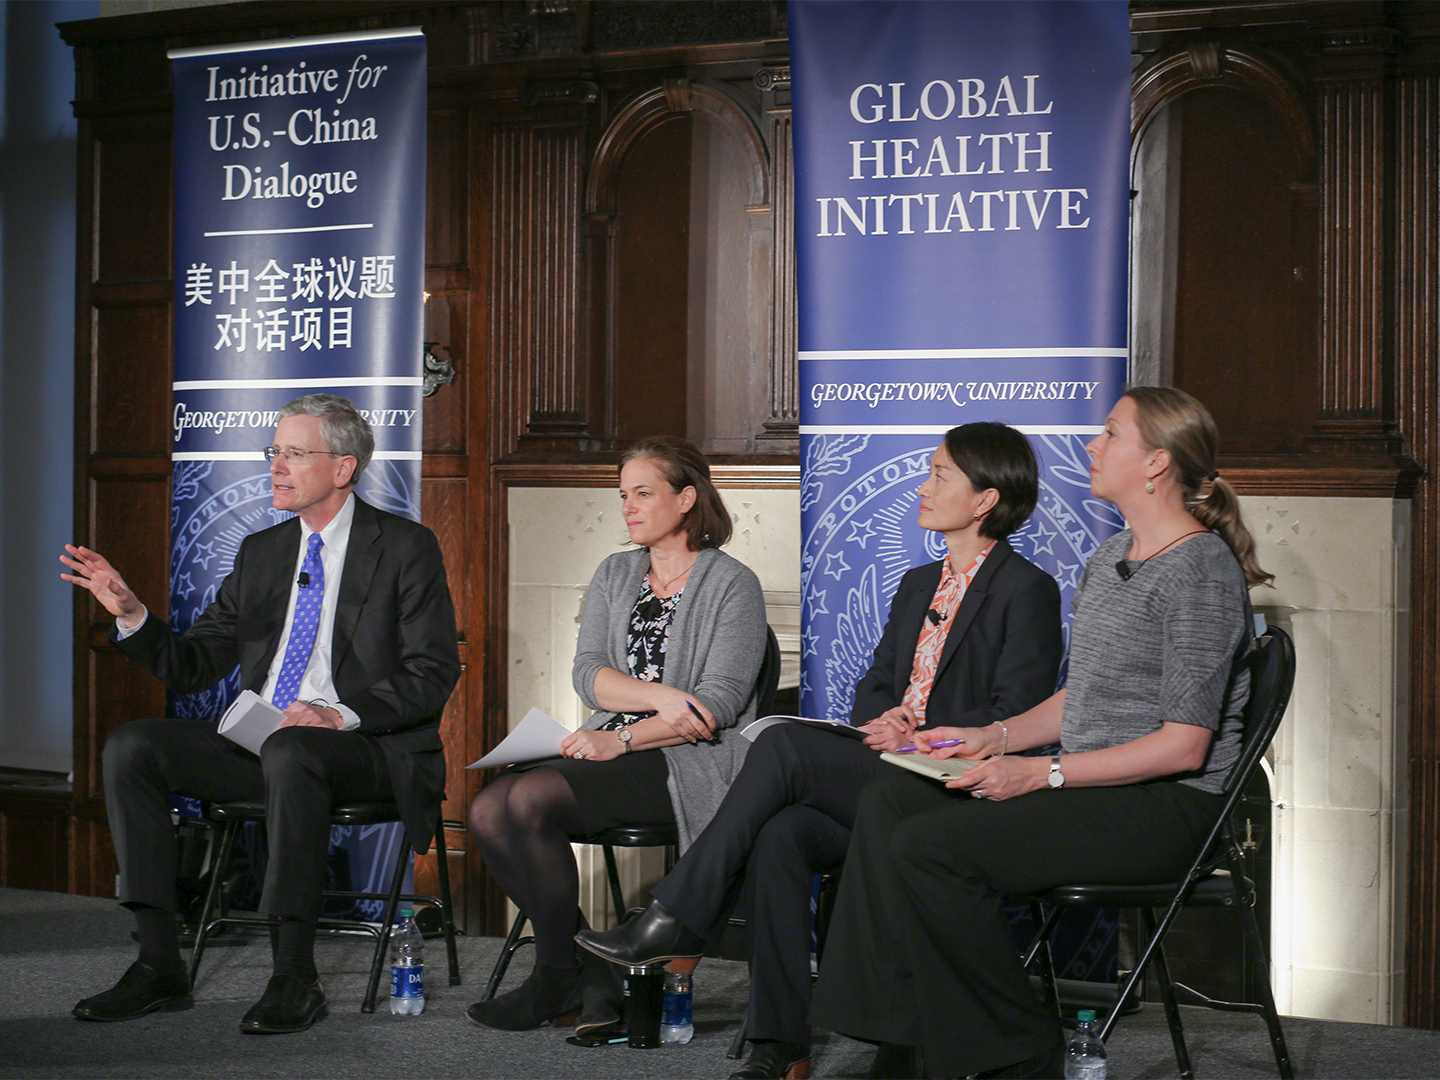 John Monahan Introduces the Expert Global Health Panel